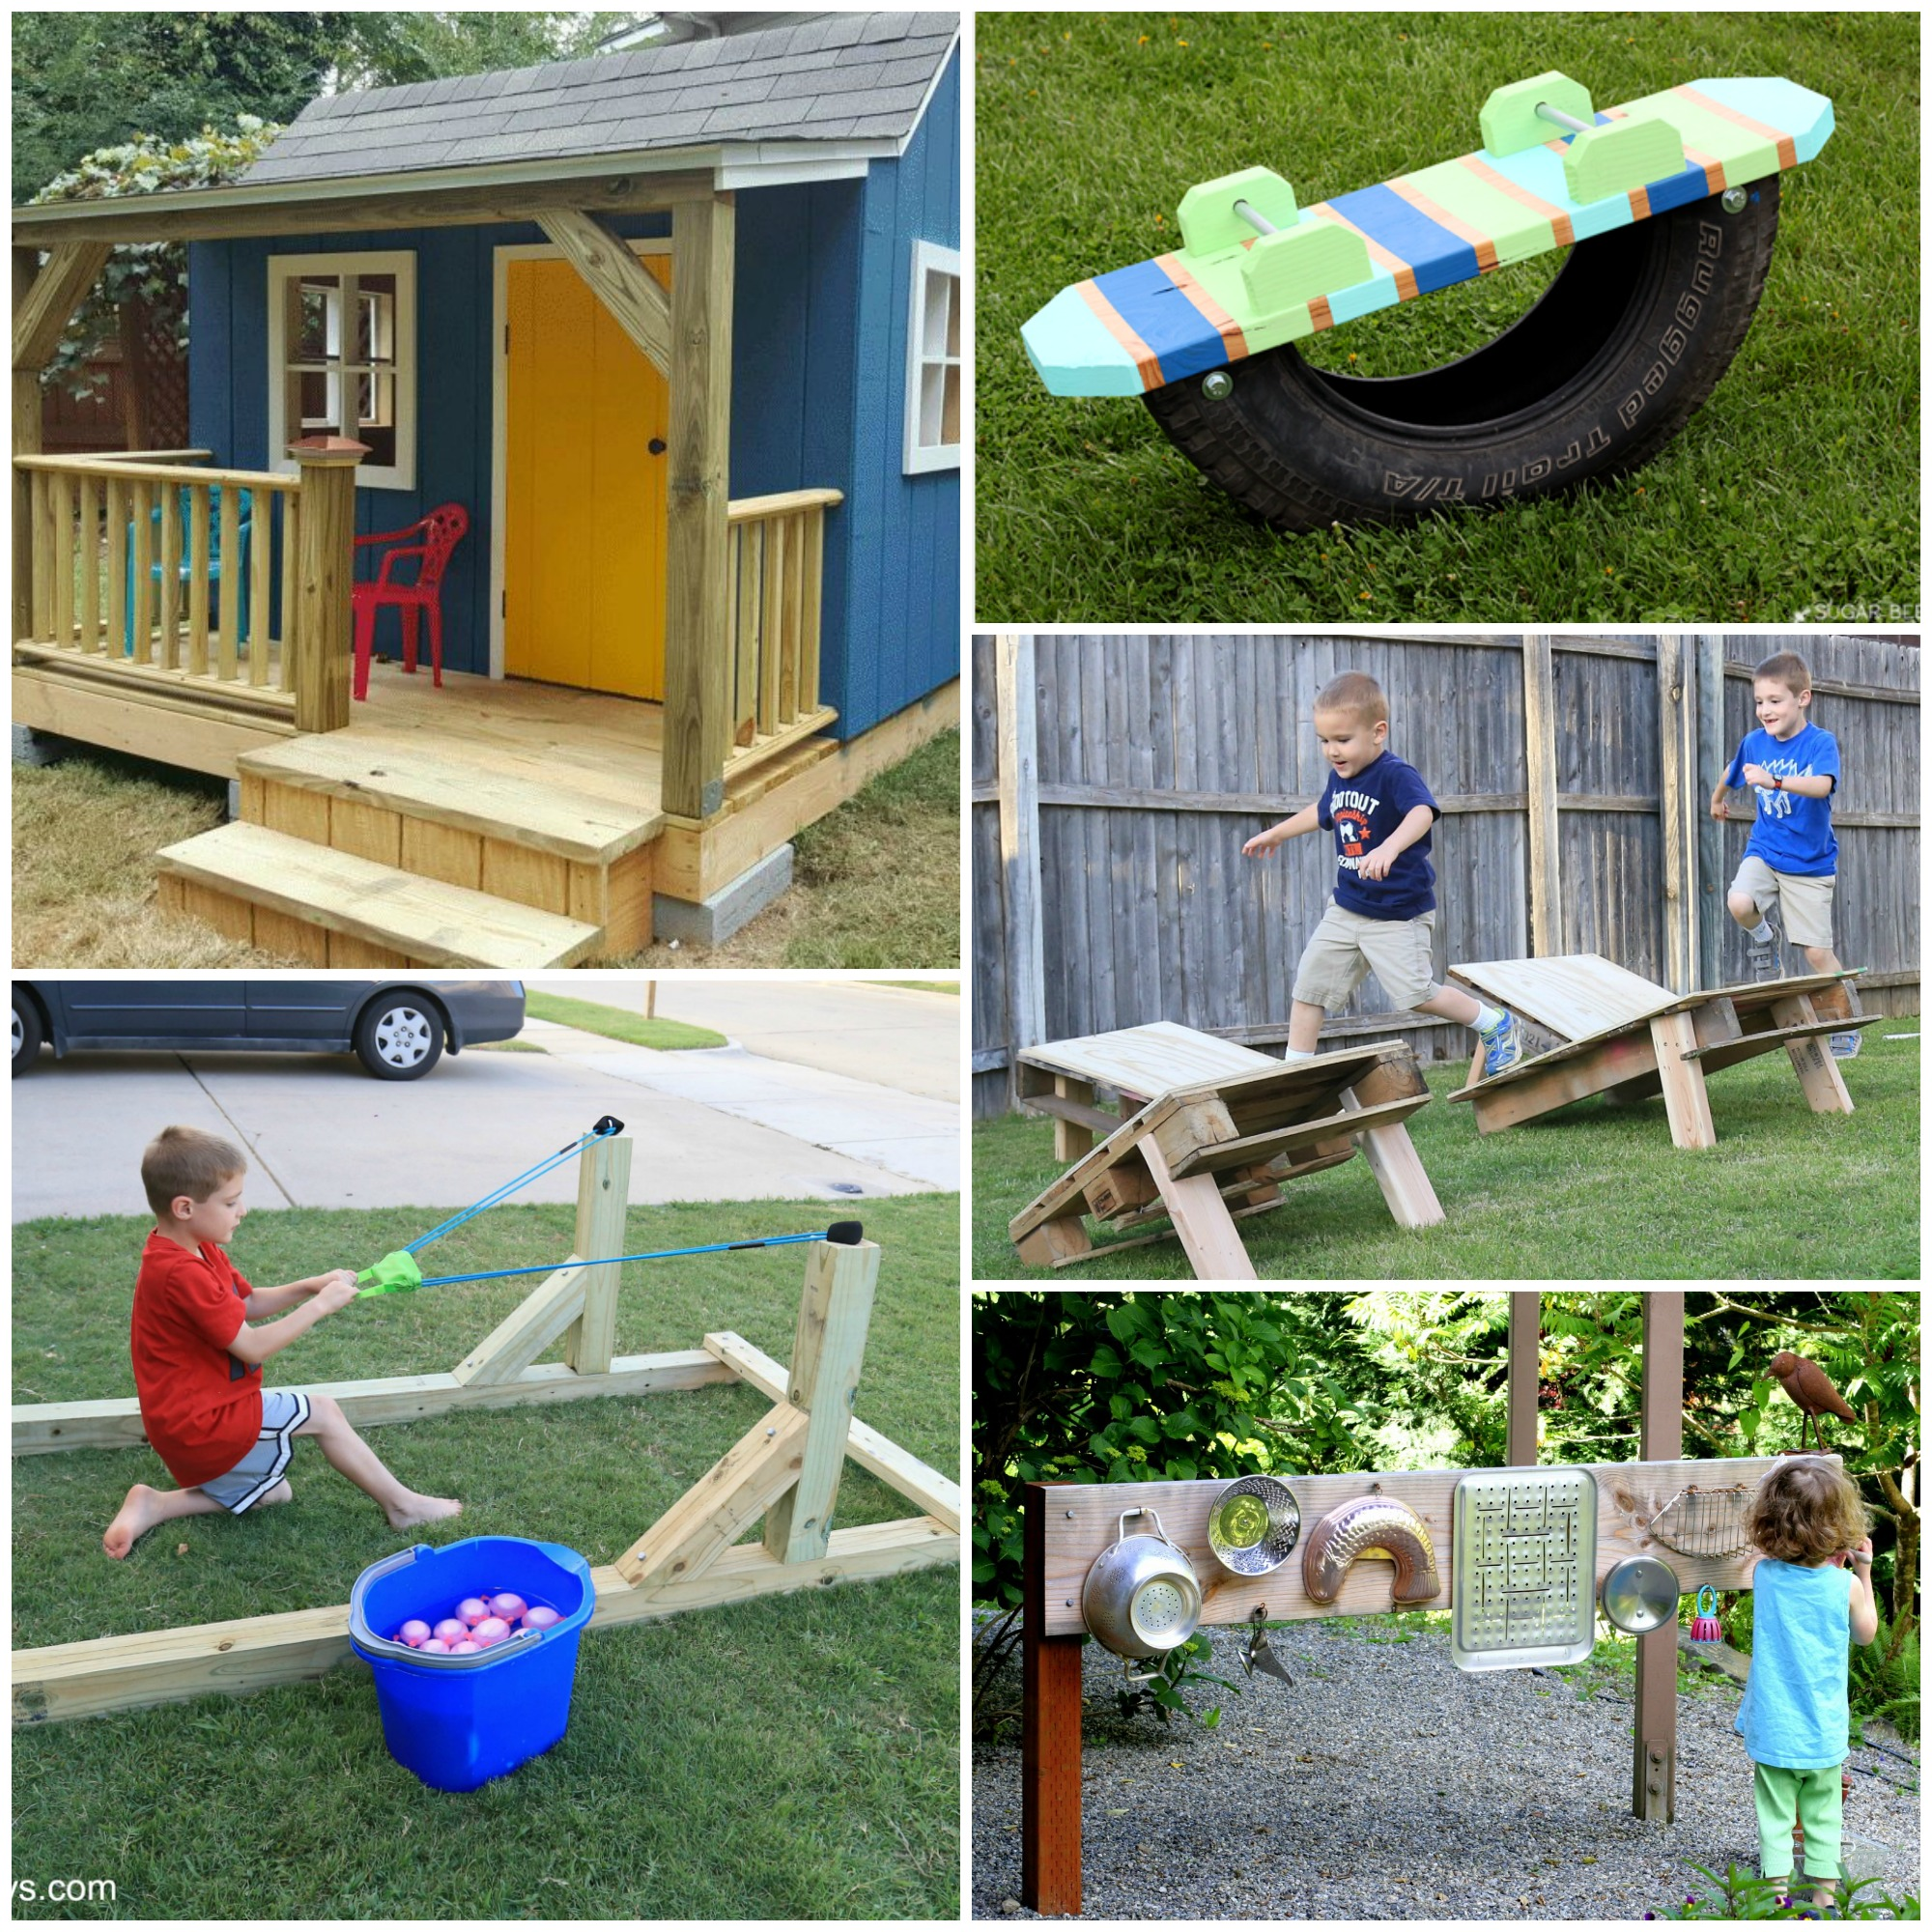 Superbe 25 Awesome Backyard Play Spaces To Make